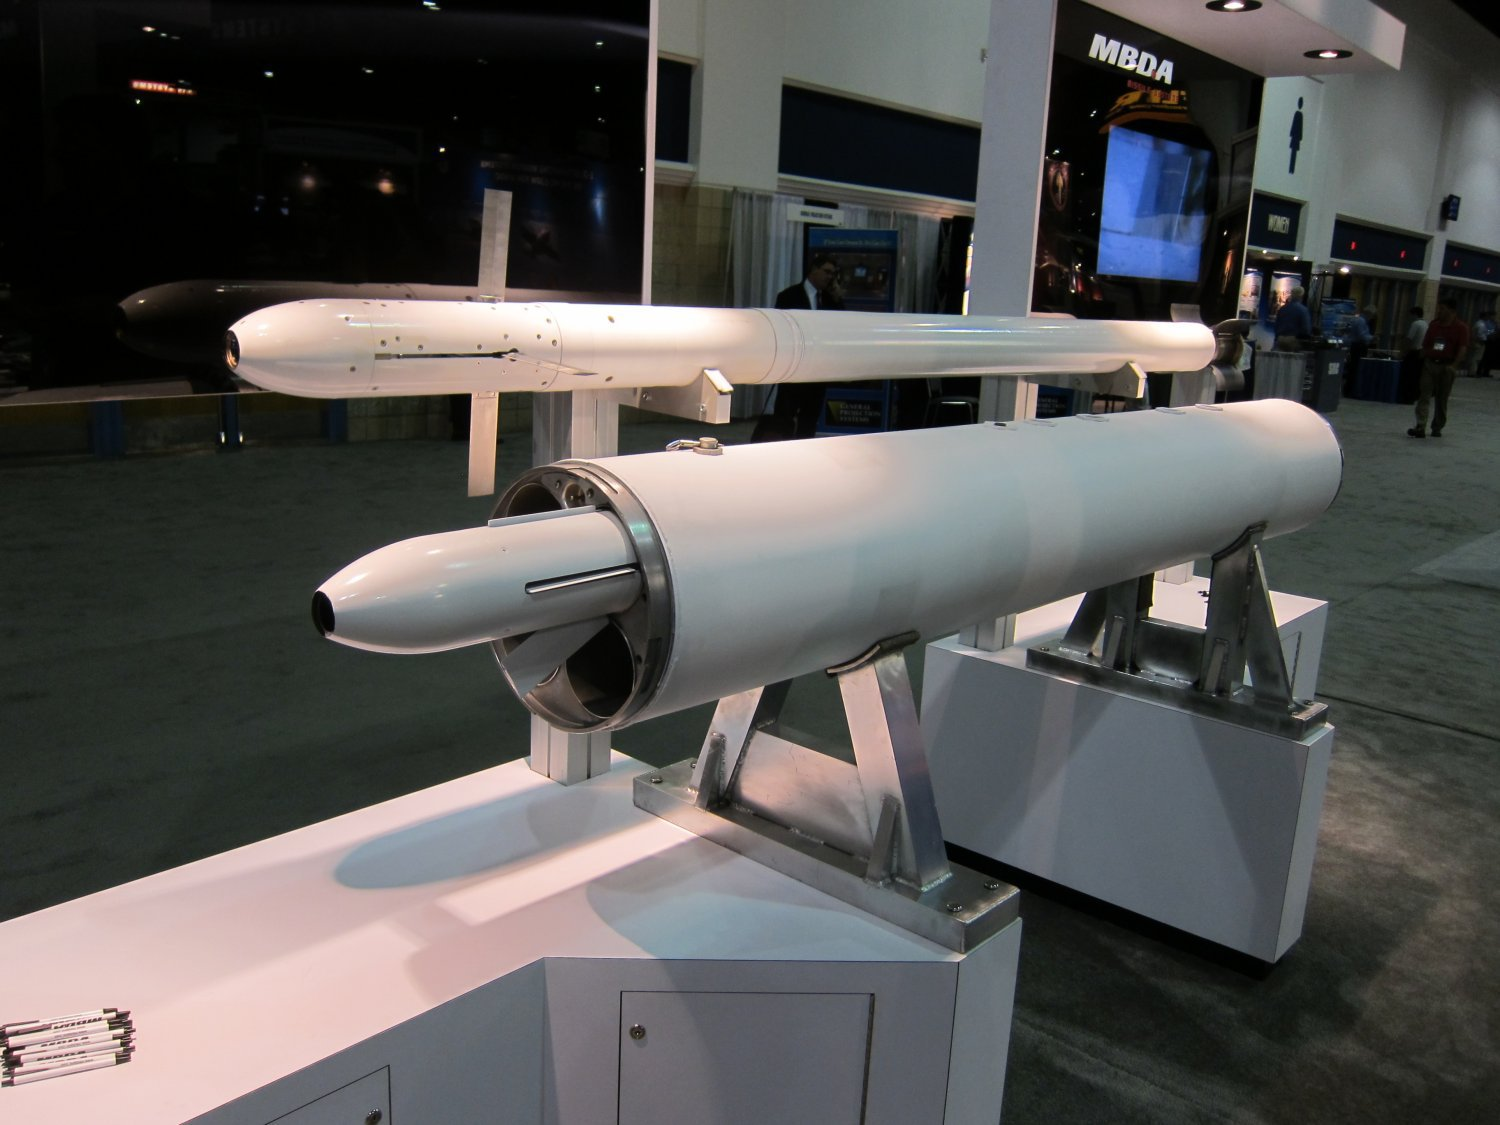 MBDA Zuni Semi Active Laser Guided Rocket 1 <!  :en  >MBDA Semi Active Laser Guided Zuni Rocket with 4 Shot LAU 10 Rocket Pod (Launch Pod): Precision Guided Rockets Get a Big Boost (Photos!)<!  :  >